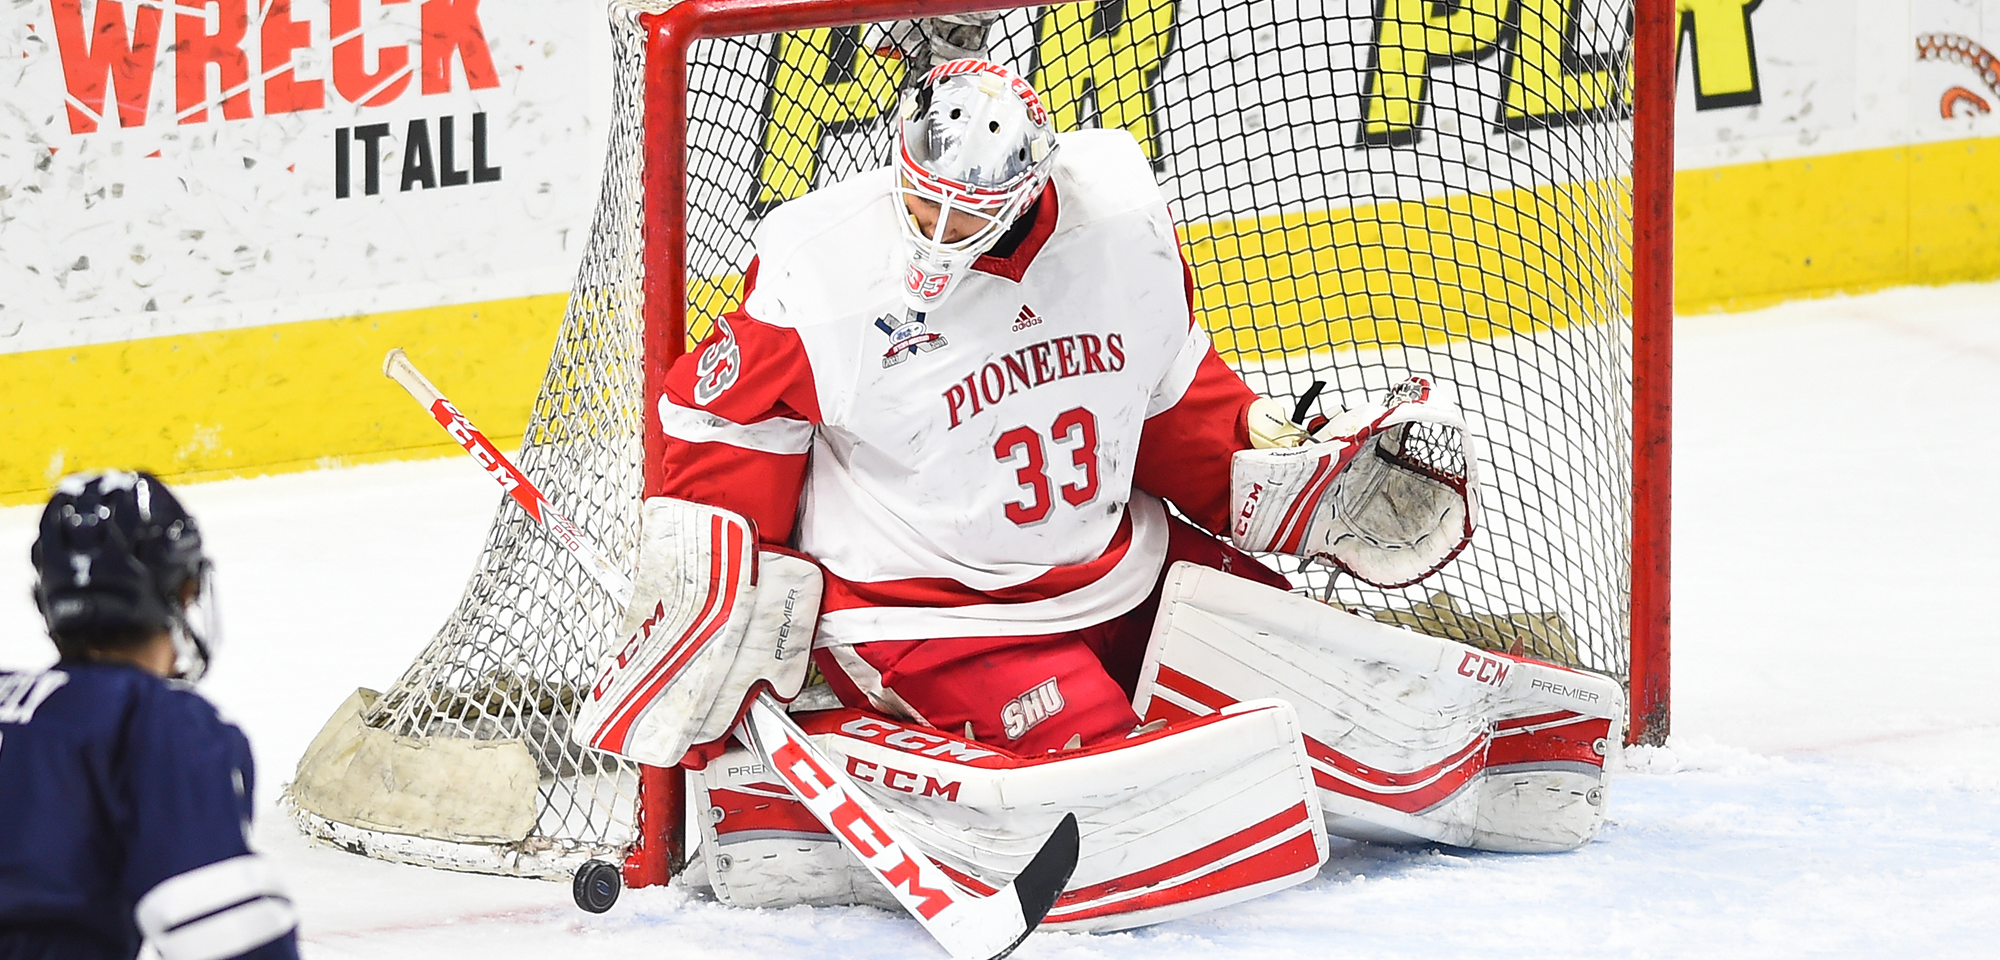 Pioneers Shutout RIT, 2-0 to Advance To Atlantic Hockey Quarterfinals